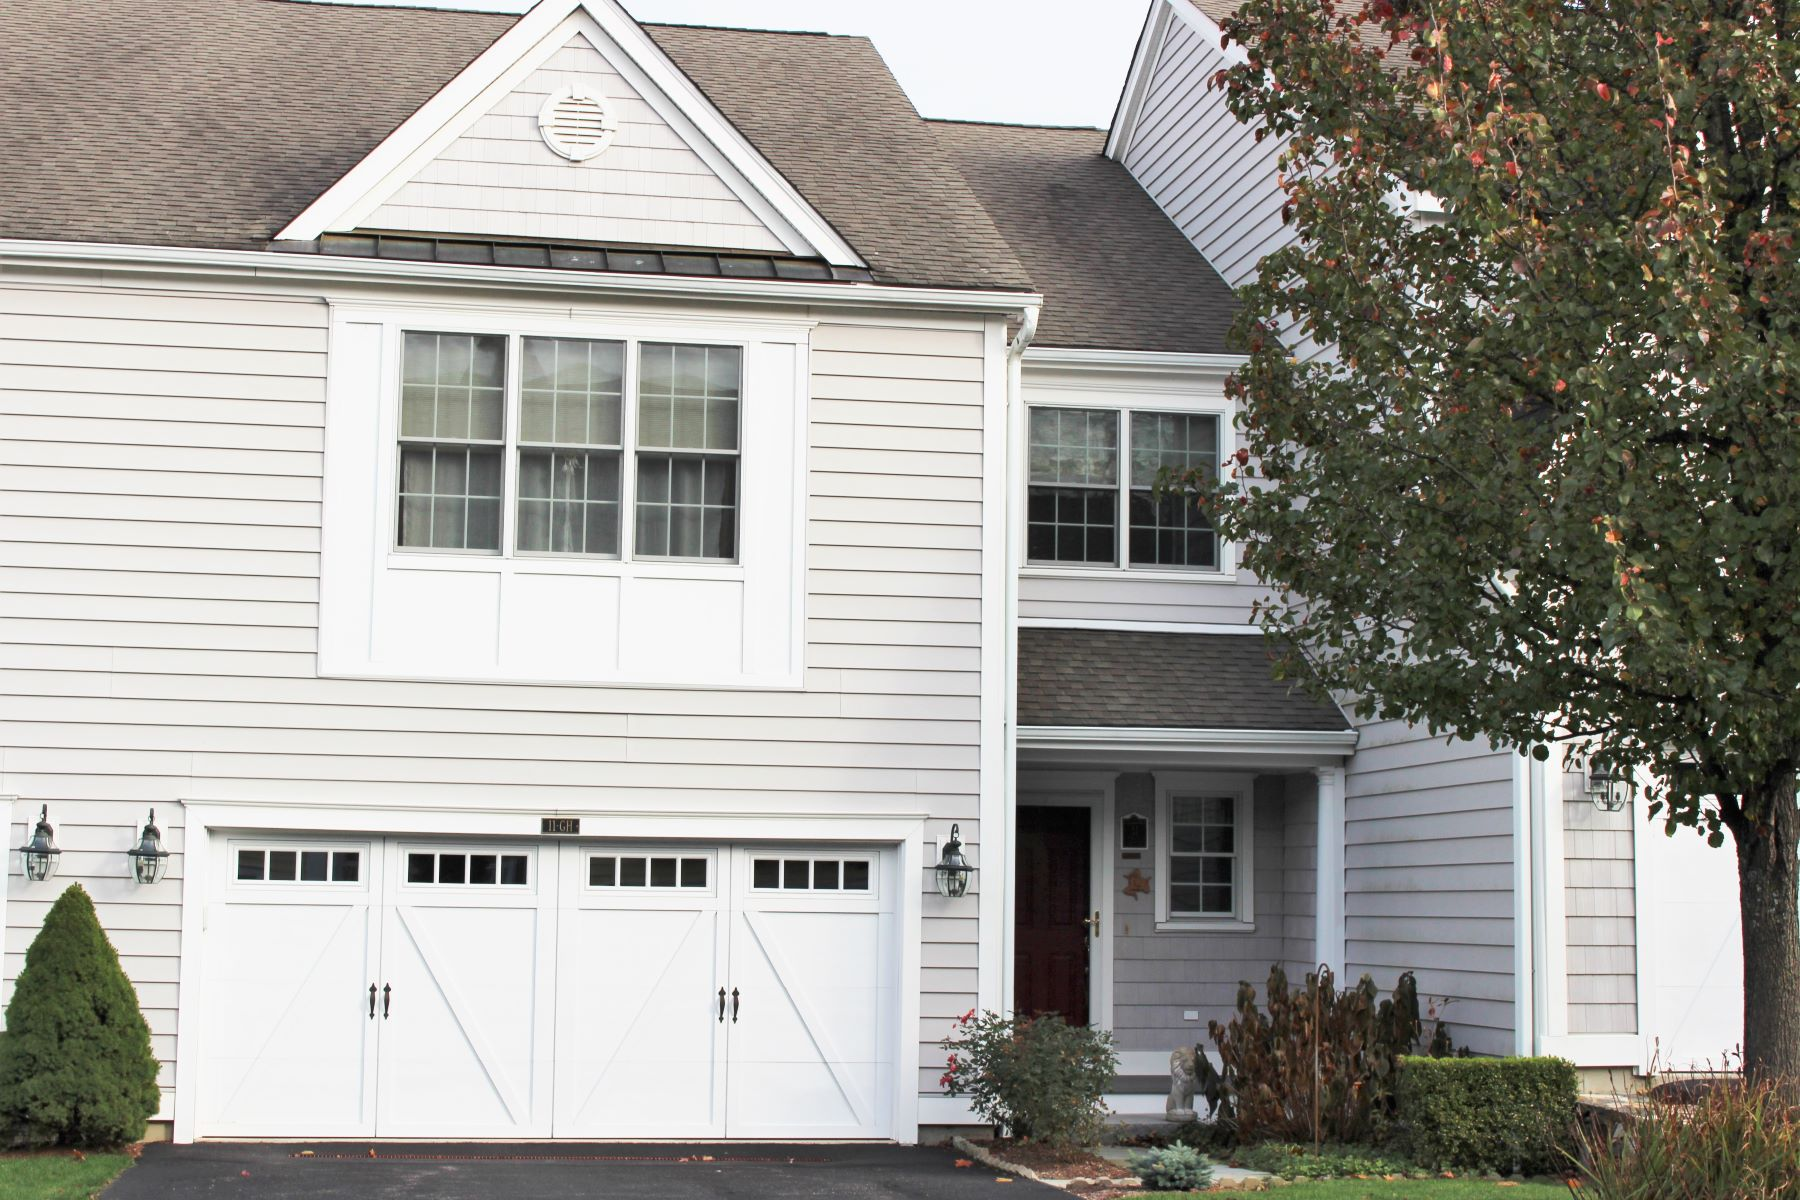 townhouses for Sale at Beechwood Townhome 11 Great Heron Lane 11, Brookfield, Connecticut 06804 United States